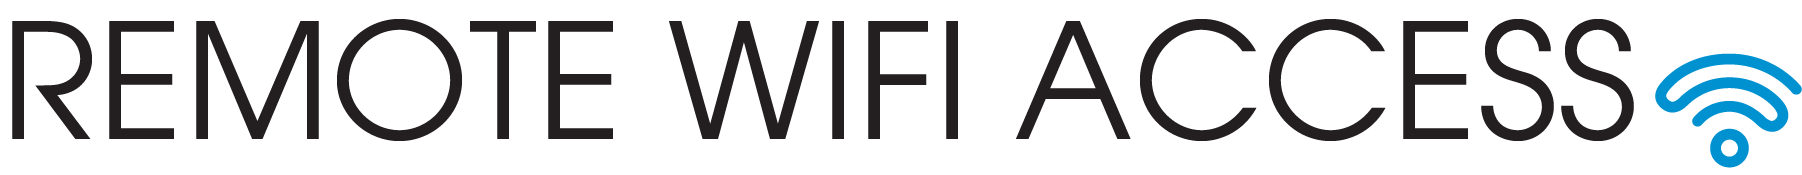 Remote Wifi Access text